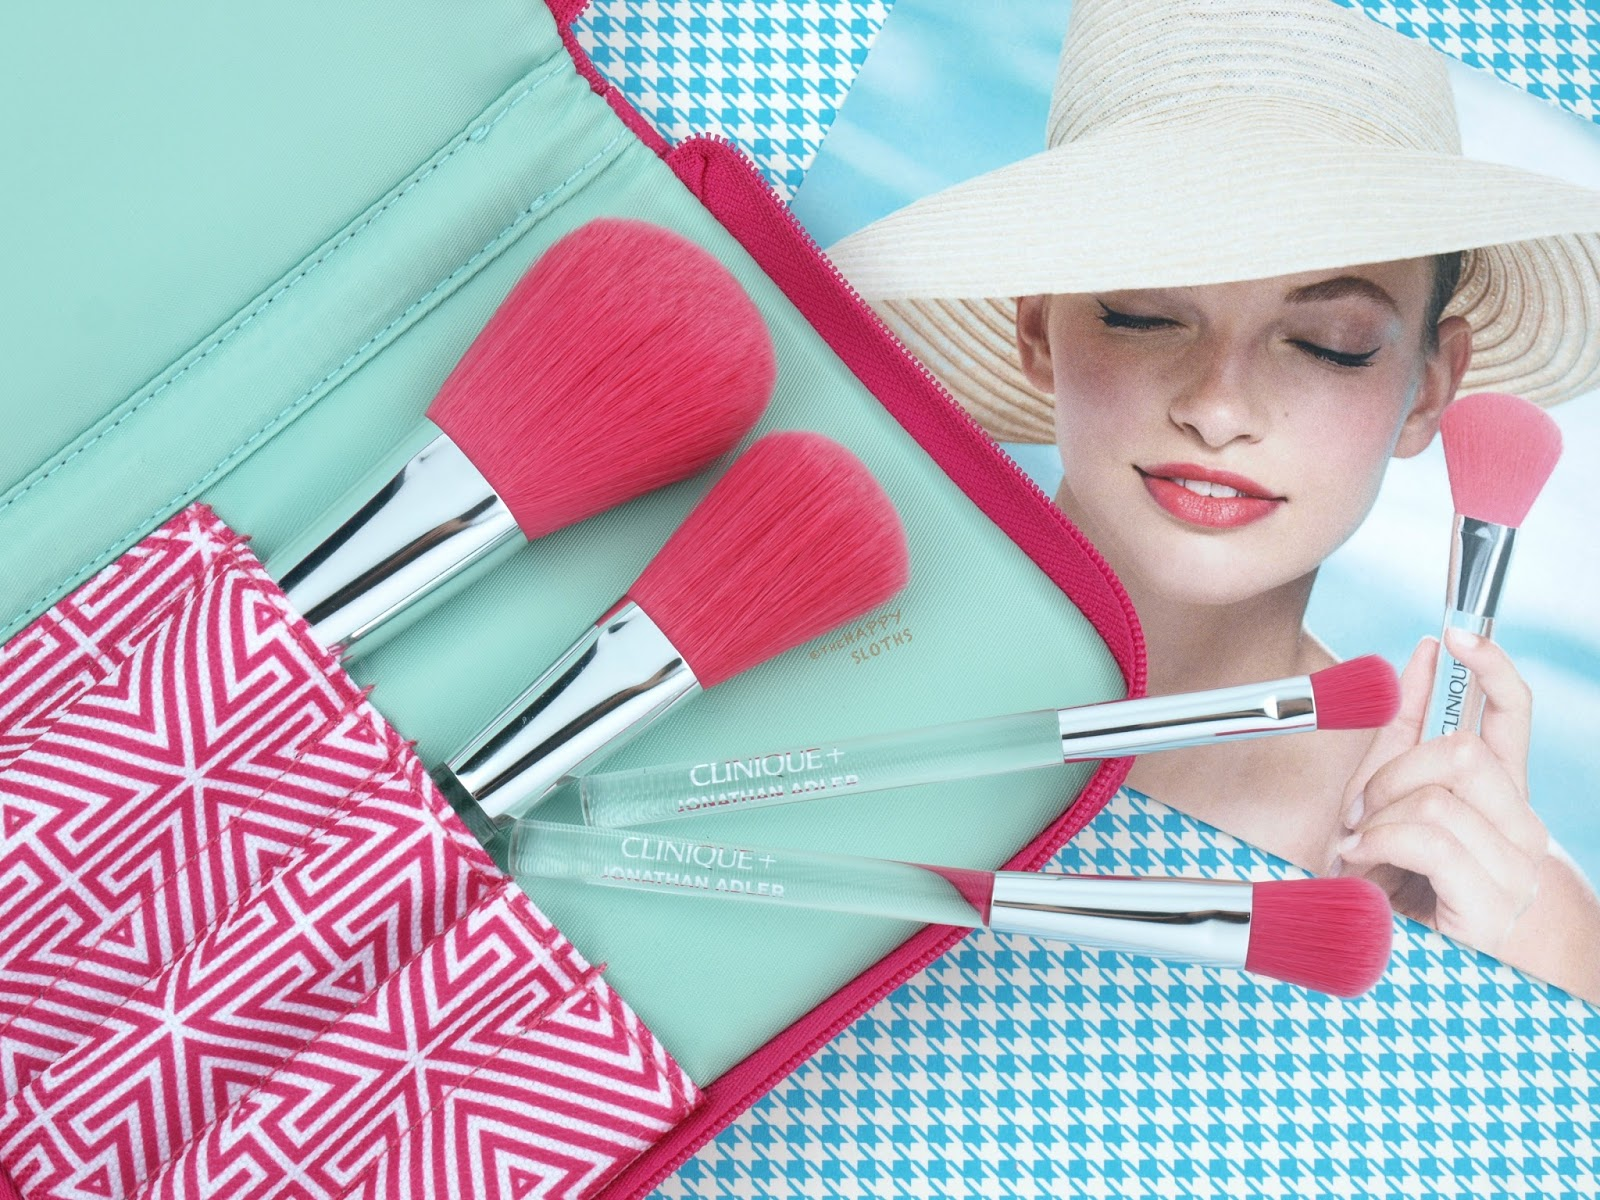 Clinique + Jonathan Adler Collection | Luxe Brush Collection: Review and Swatches